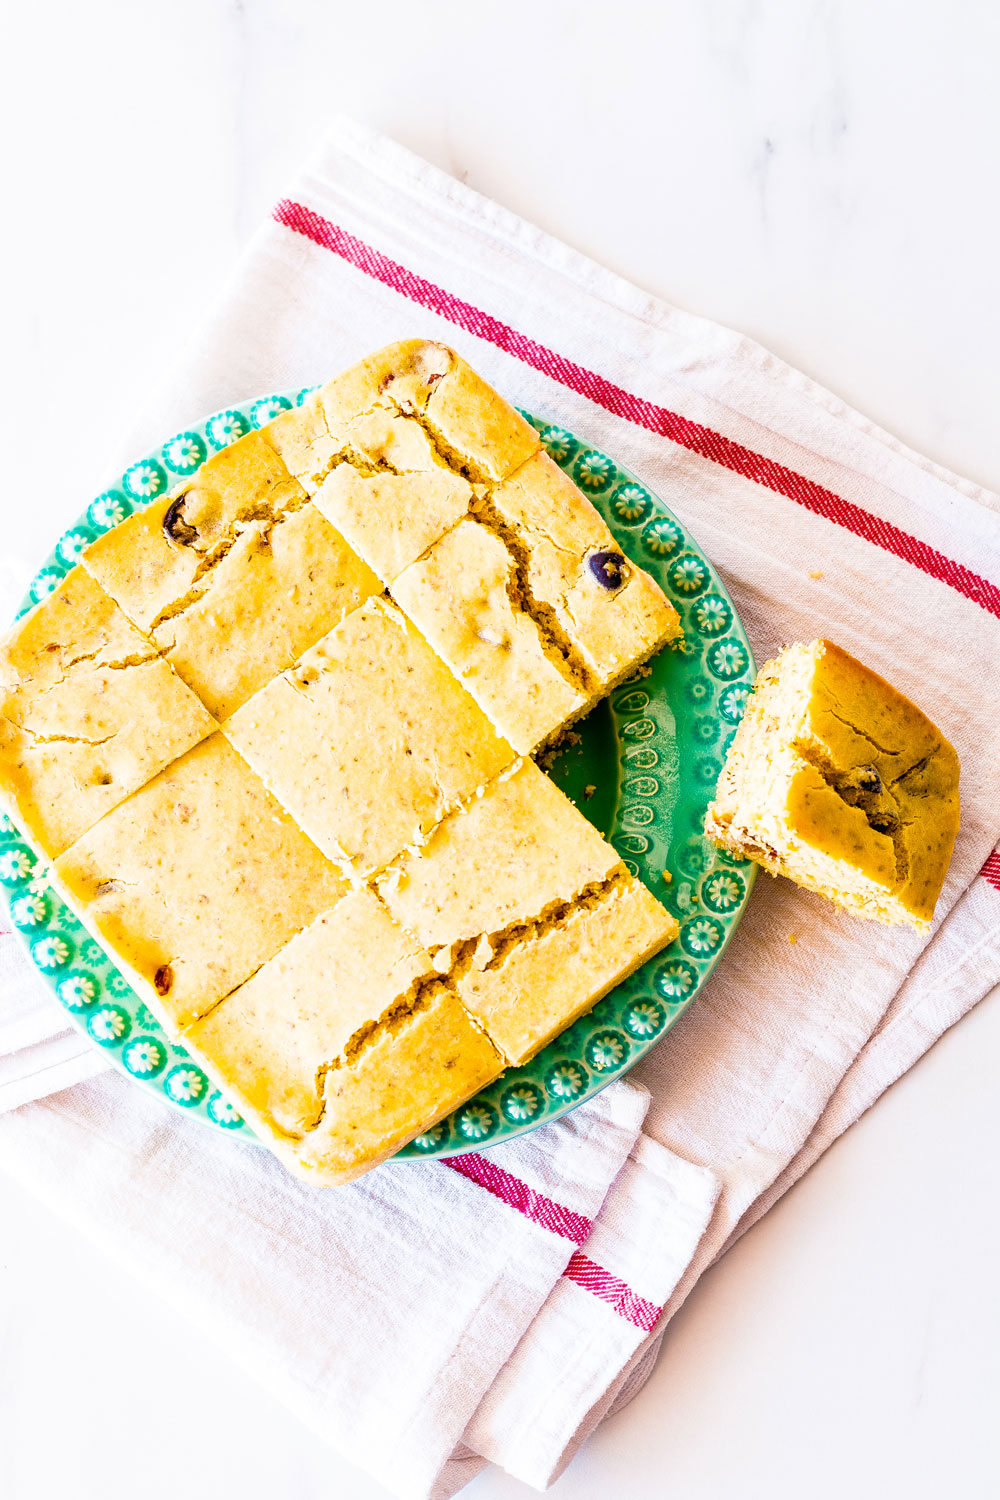 This Sun-Dried Tomato & Olives Cornbread is our take on the traditional cornbread recipe. It's refined-sugar-free, healthy, high in fiber, and pairs well with roasted veggies, a hearty chili, or a bowl of spicy soup. https://www.spotebi.com/recipes/sun-dried-tomato-olive-cornbread/